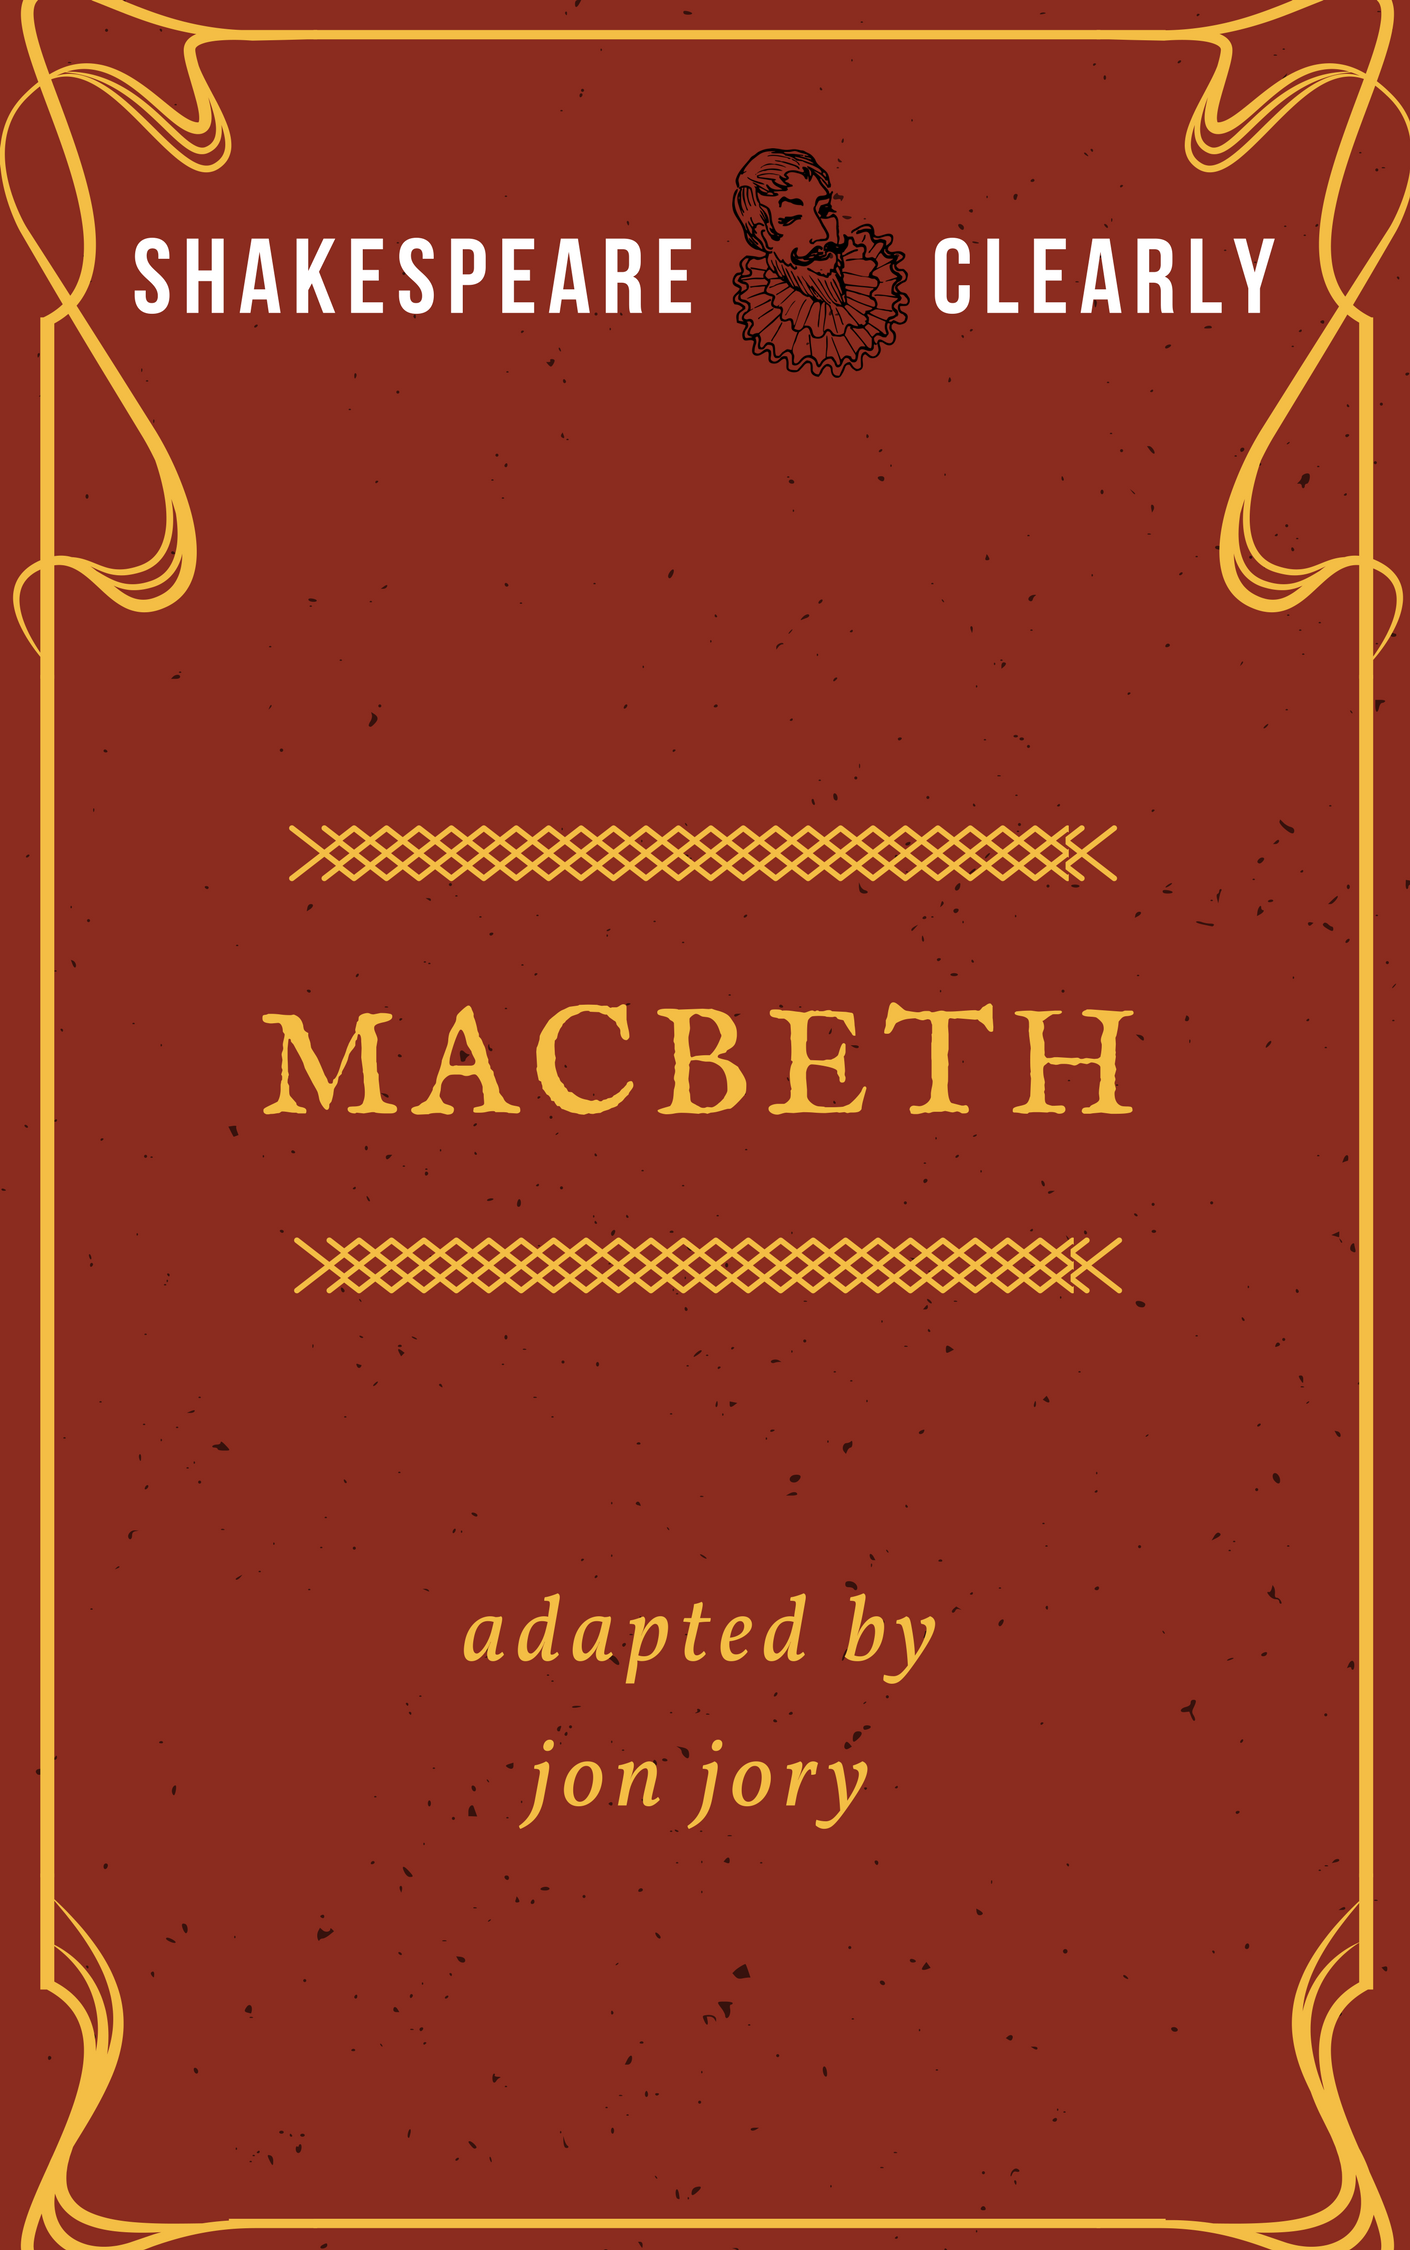 Macbeth adapted by Jon Jory